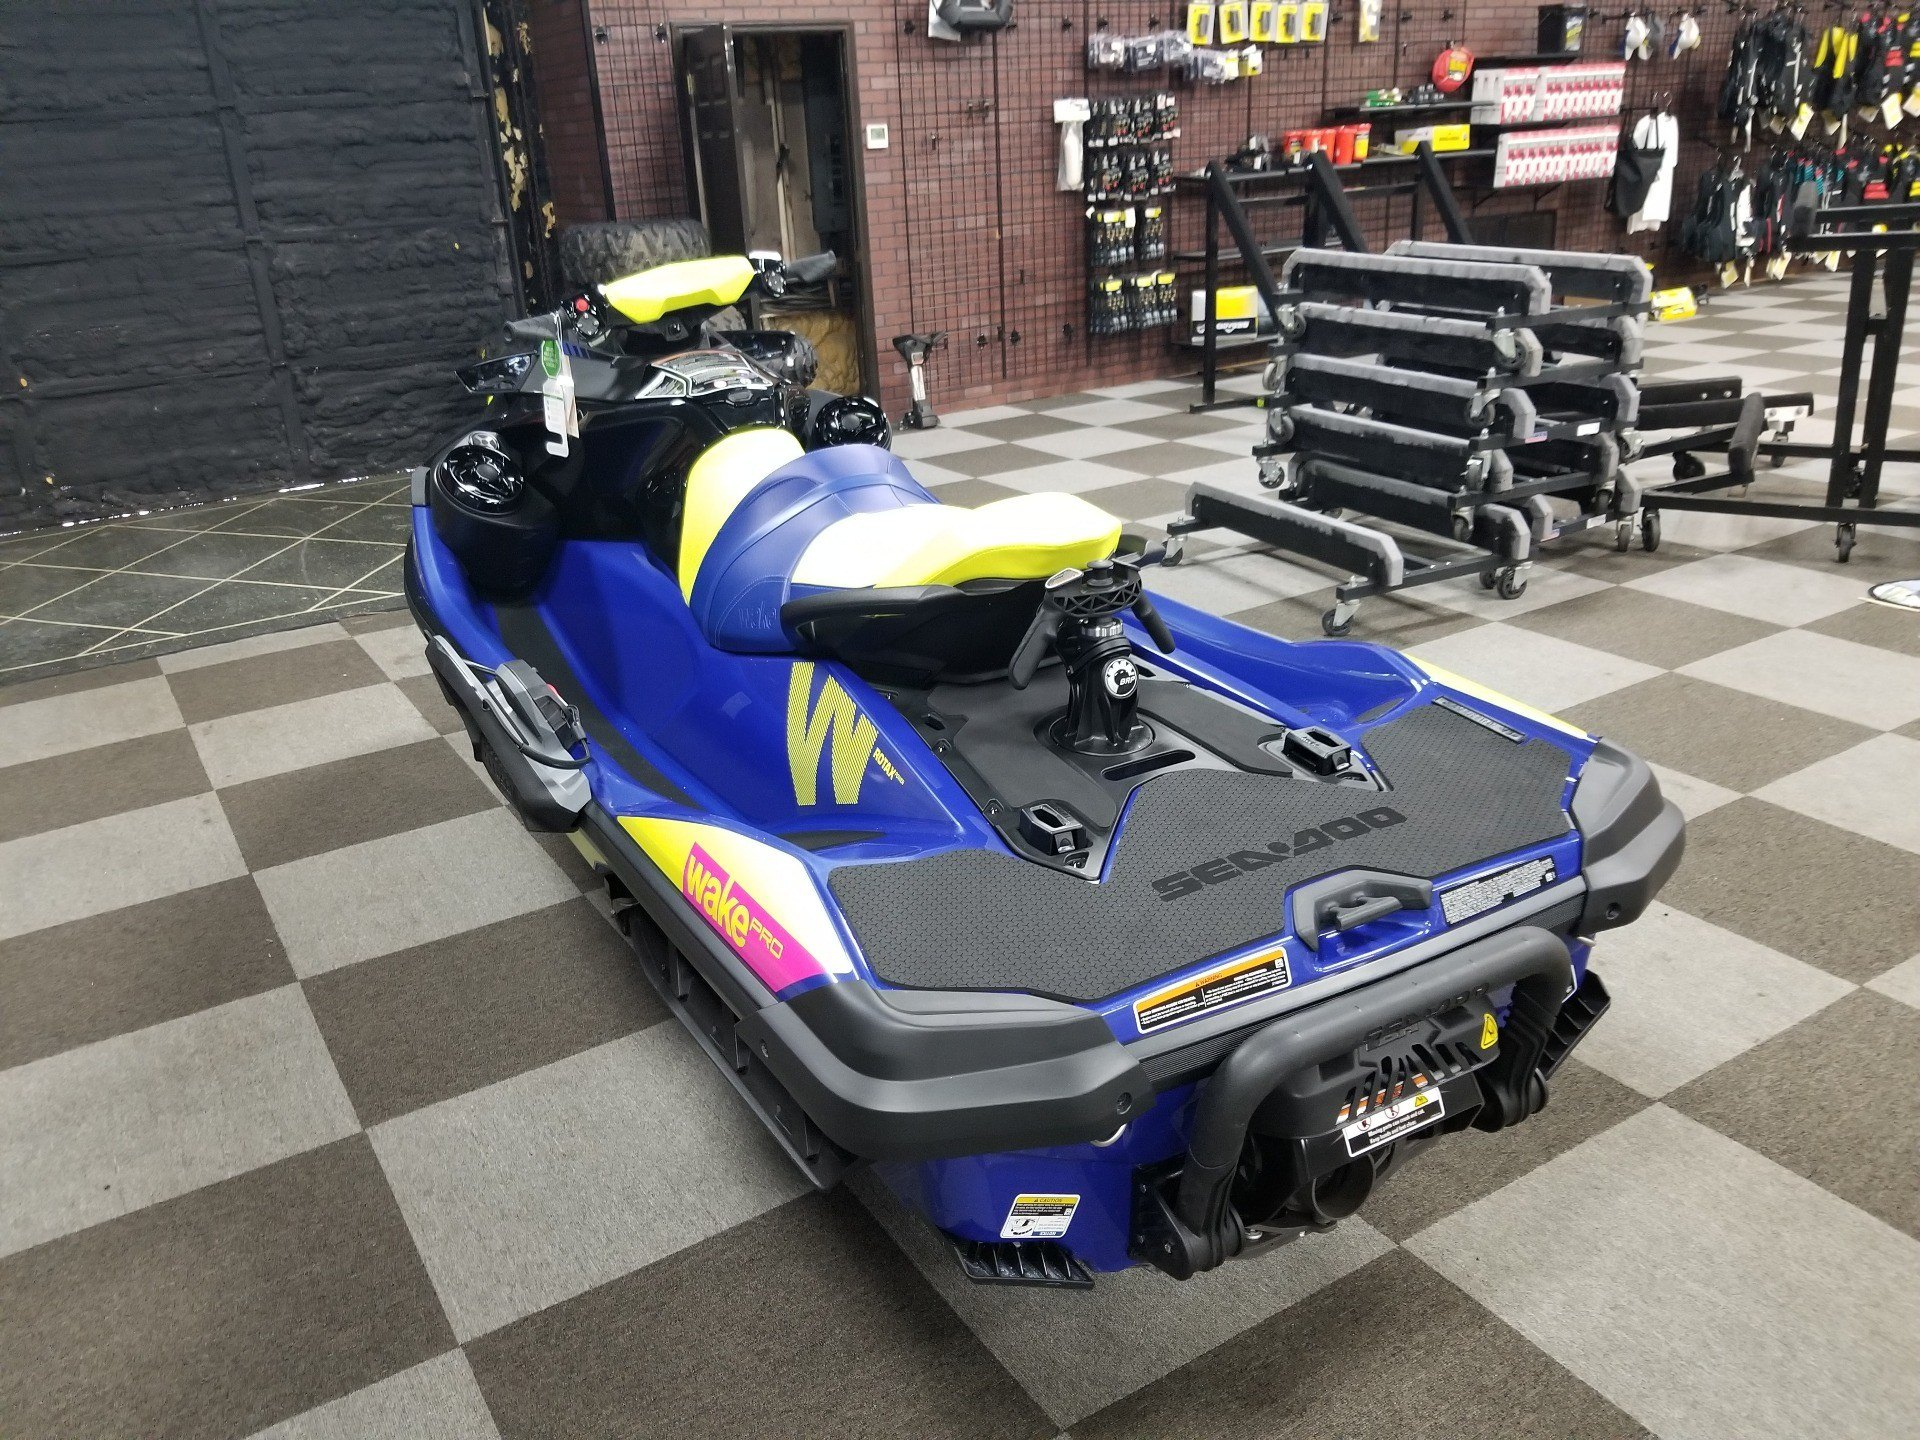 2021 Sea-Doo WAKE Pro 230 in Jesup, Georgia - Photo 6